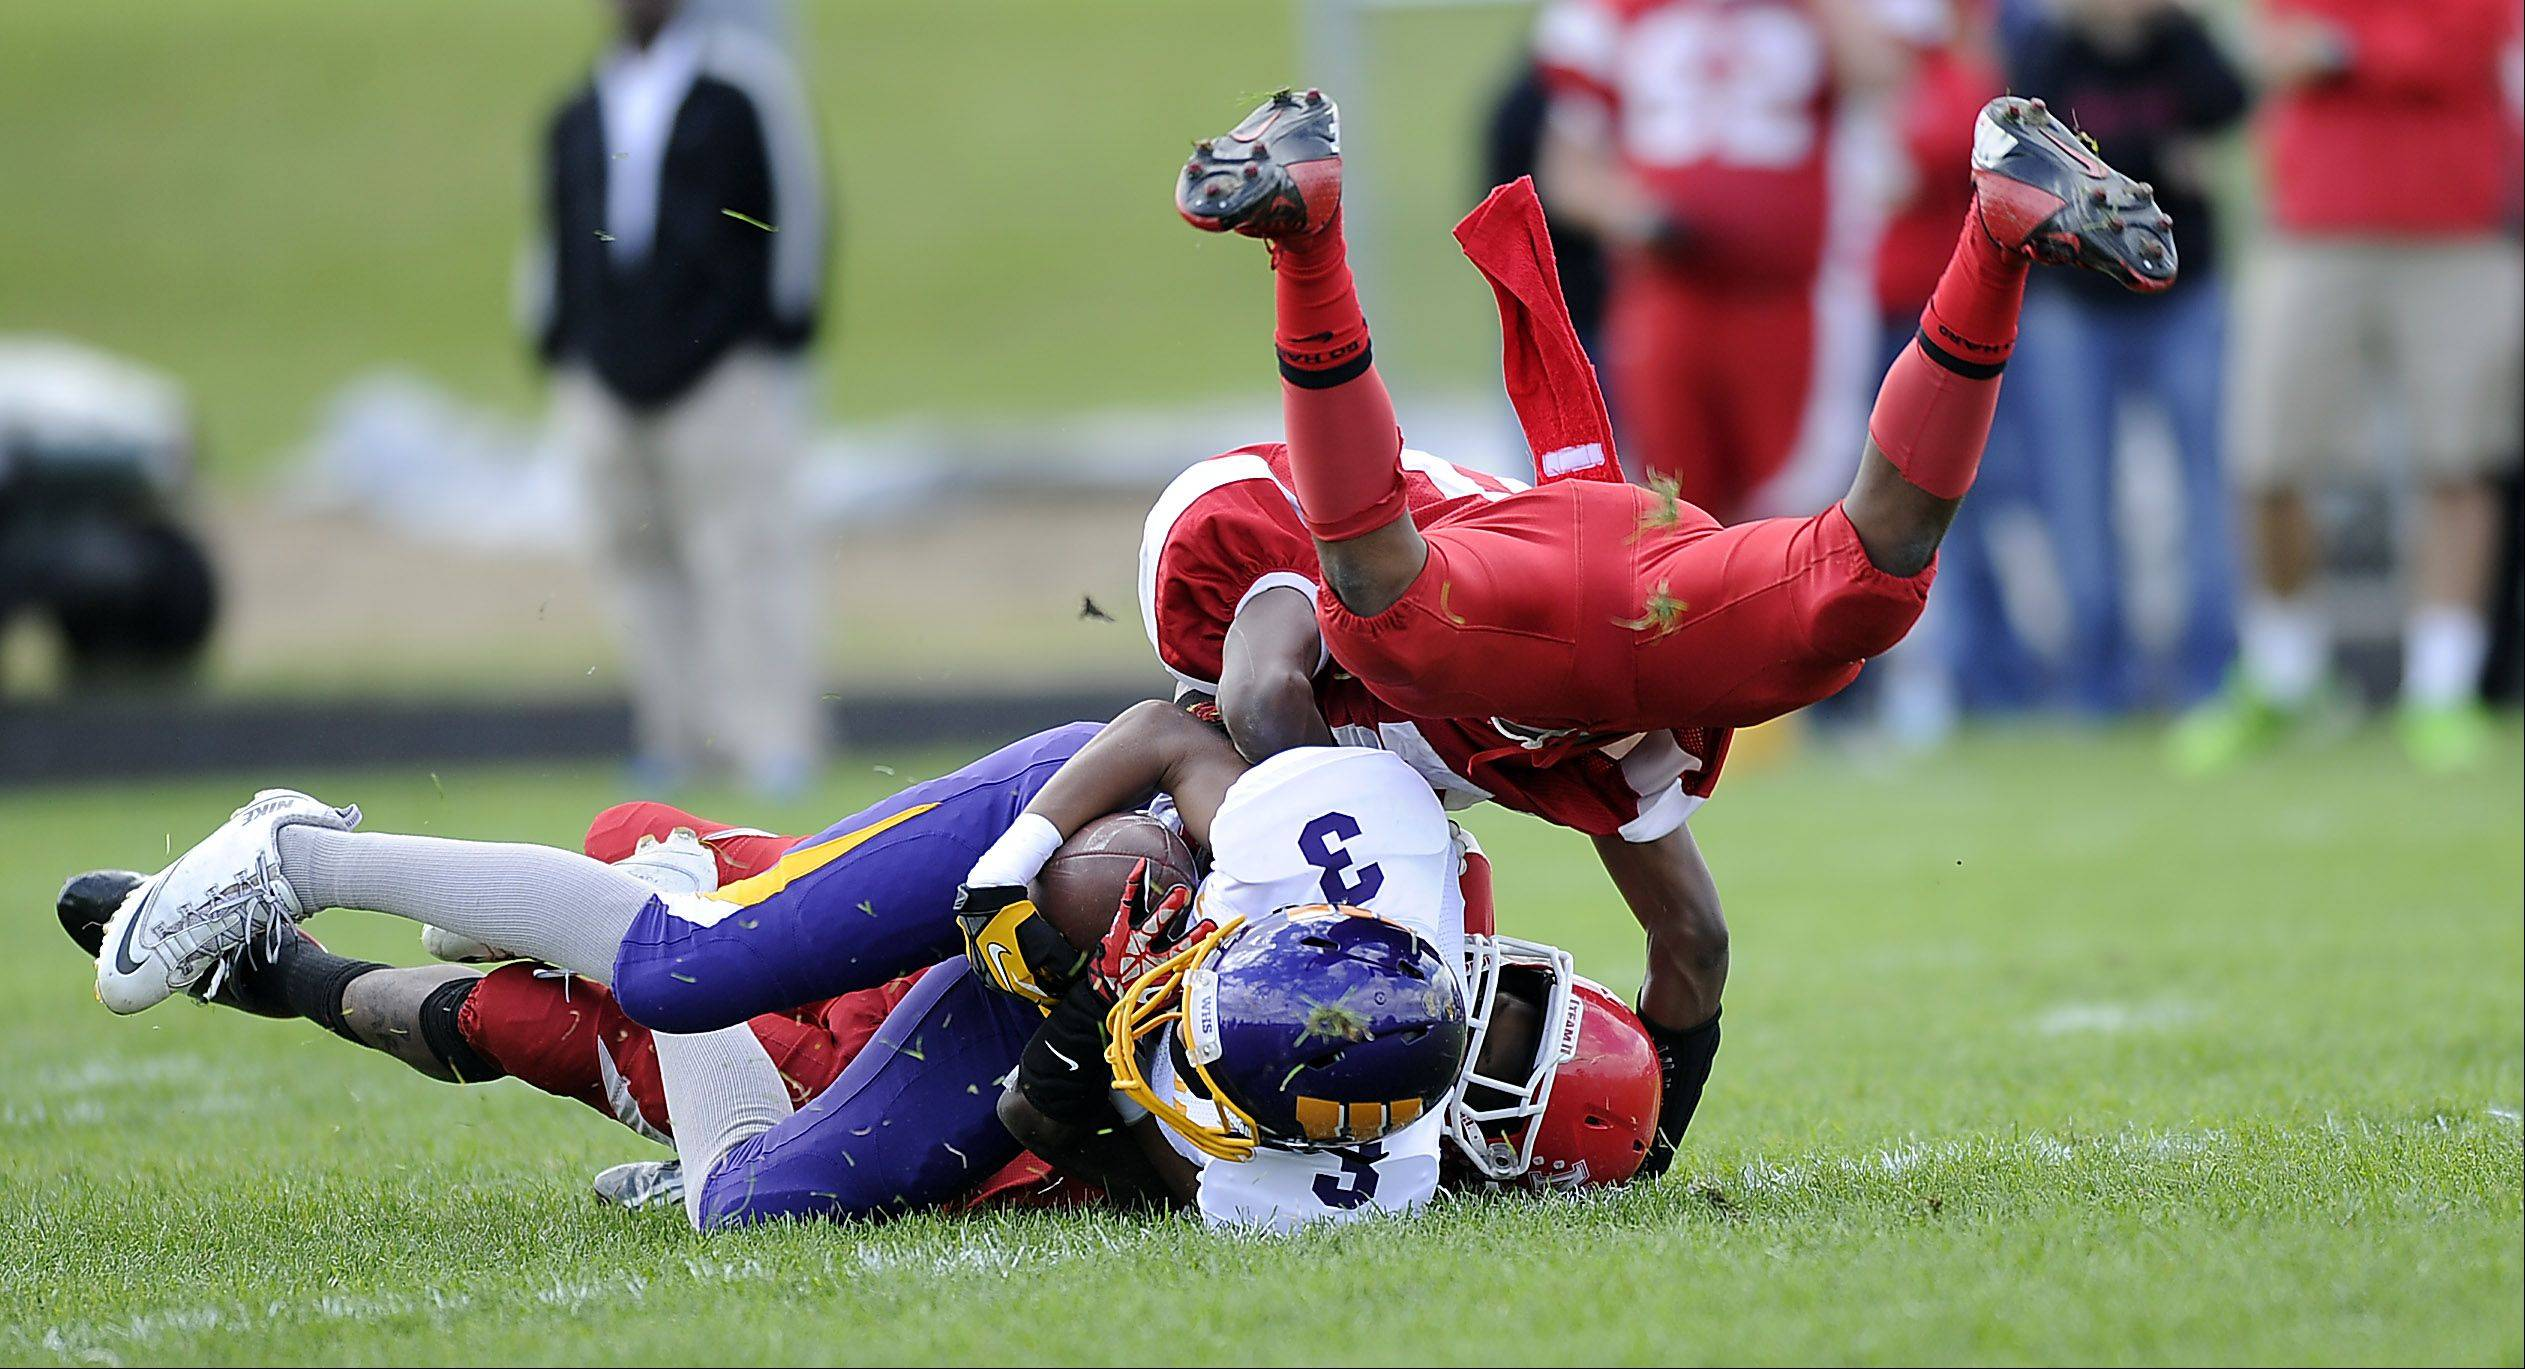 Wauconda's Josh Anderson is tackled by Tazari Bryant for short yardage in the first half of varsity football at North Chicago High School on Saturday.